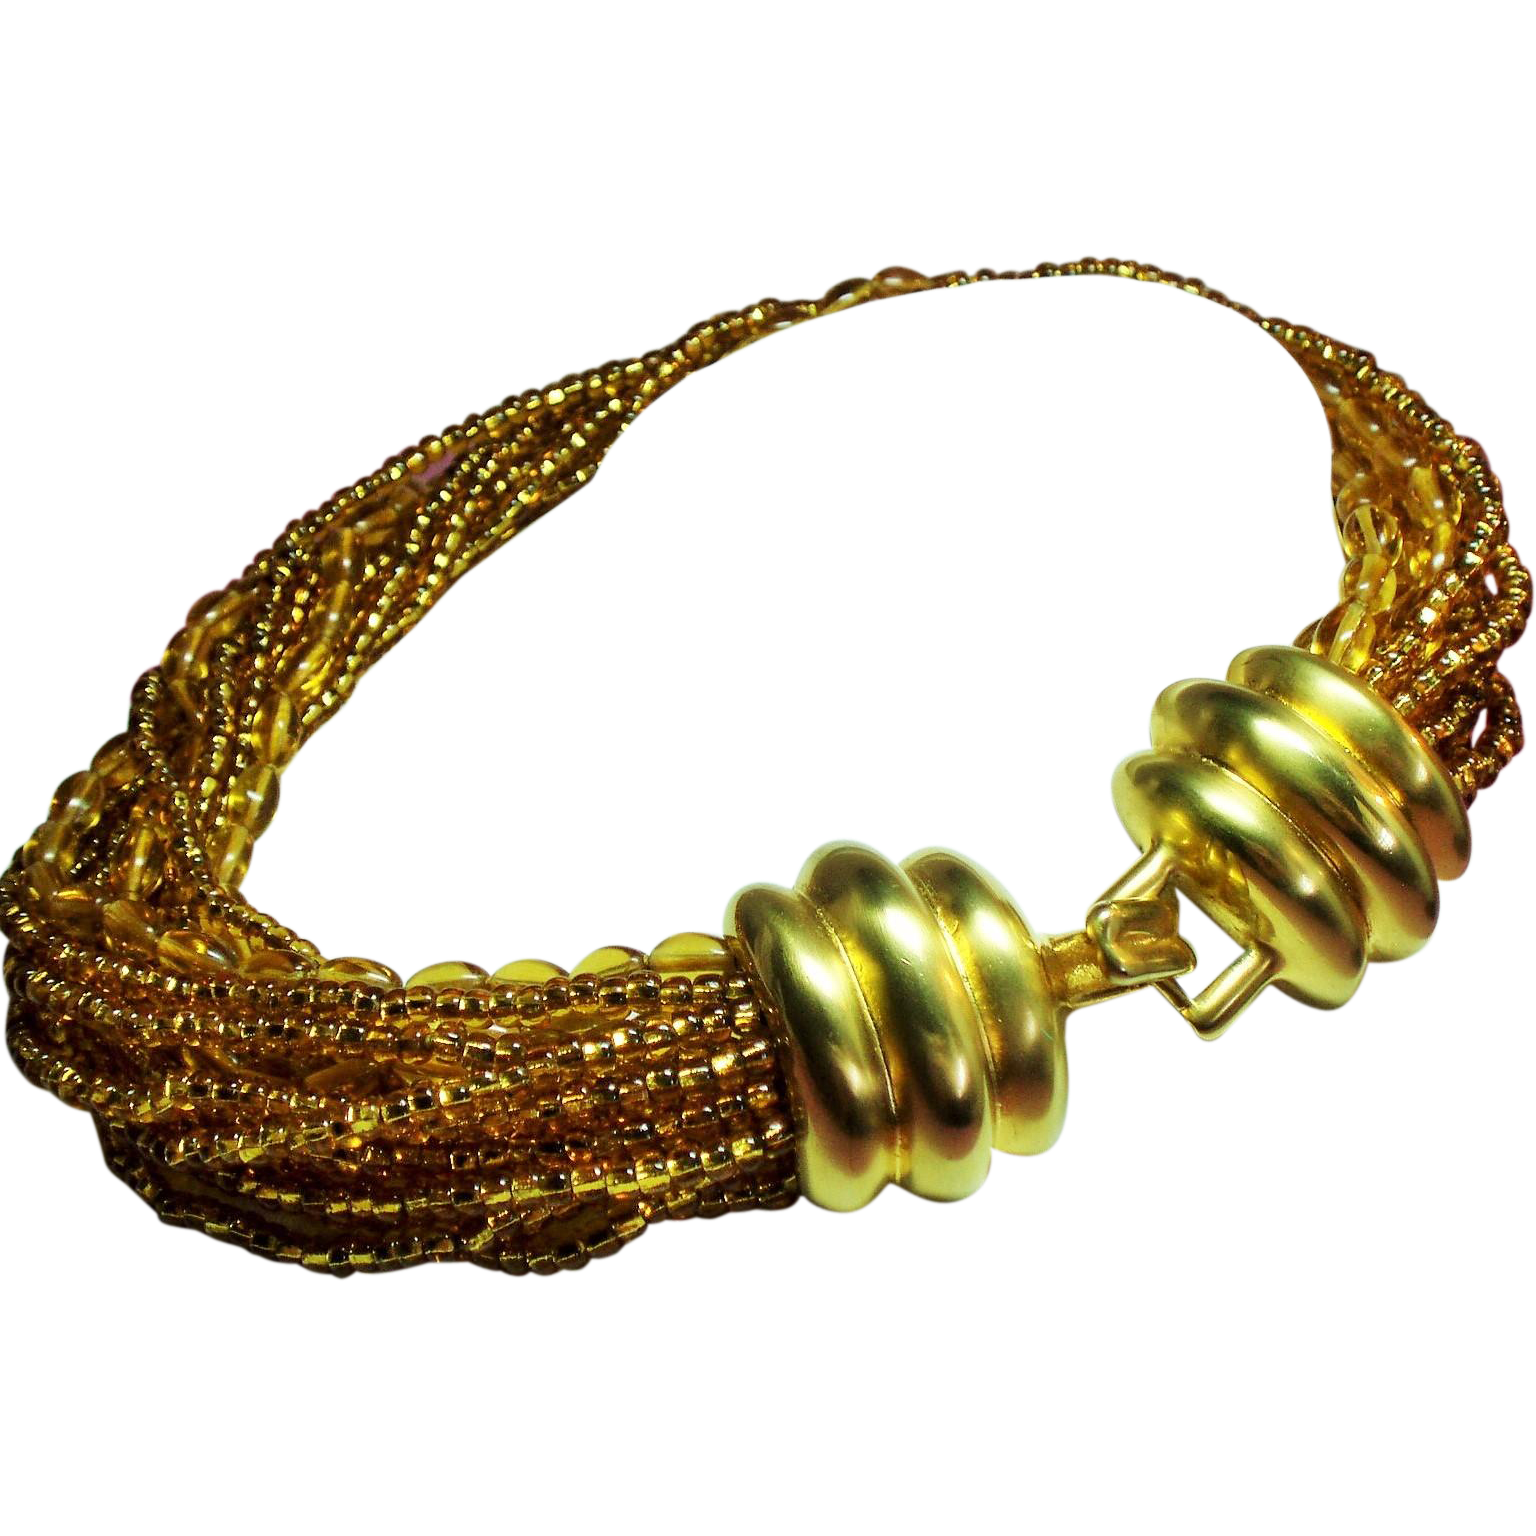 Vintage Donald Stannard Couture Golden Glass Bead Torsade Necklace